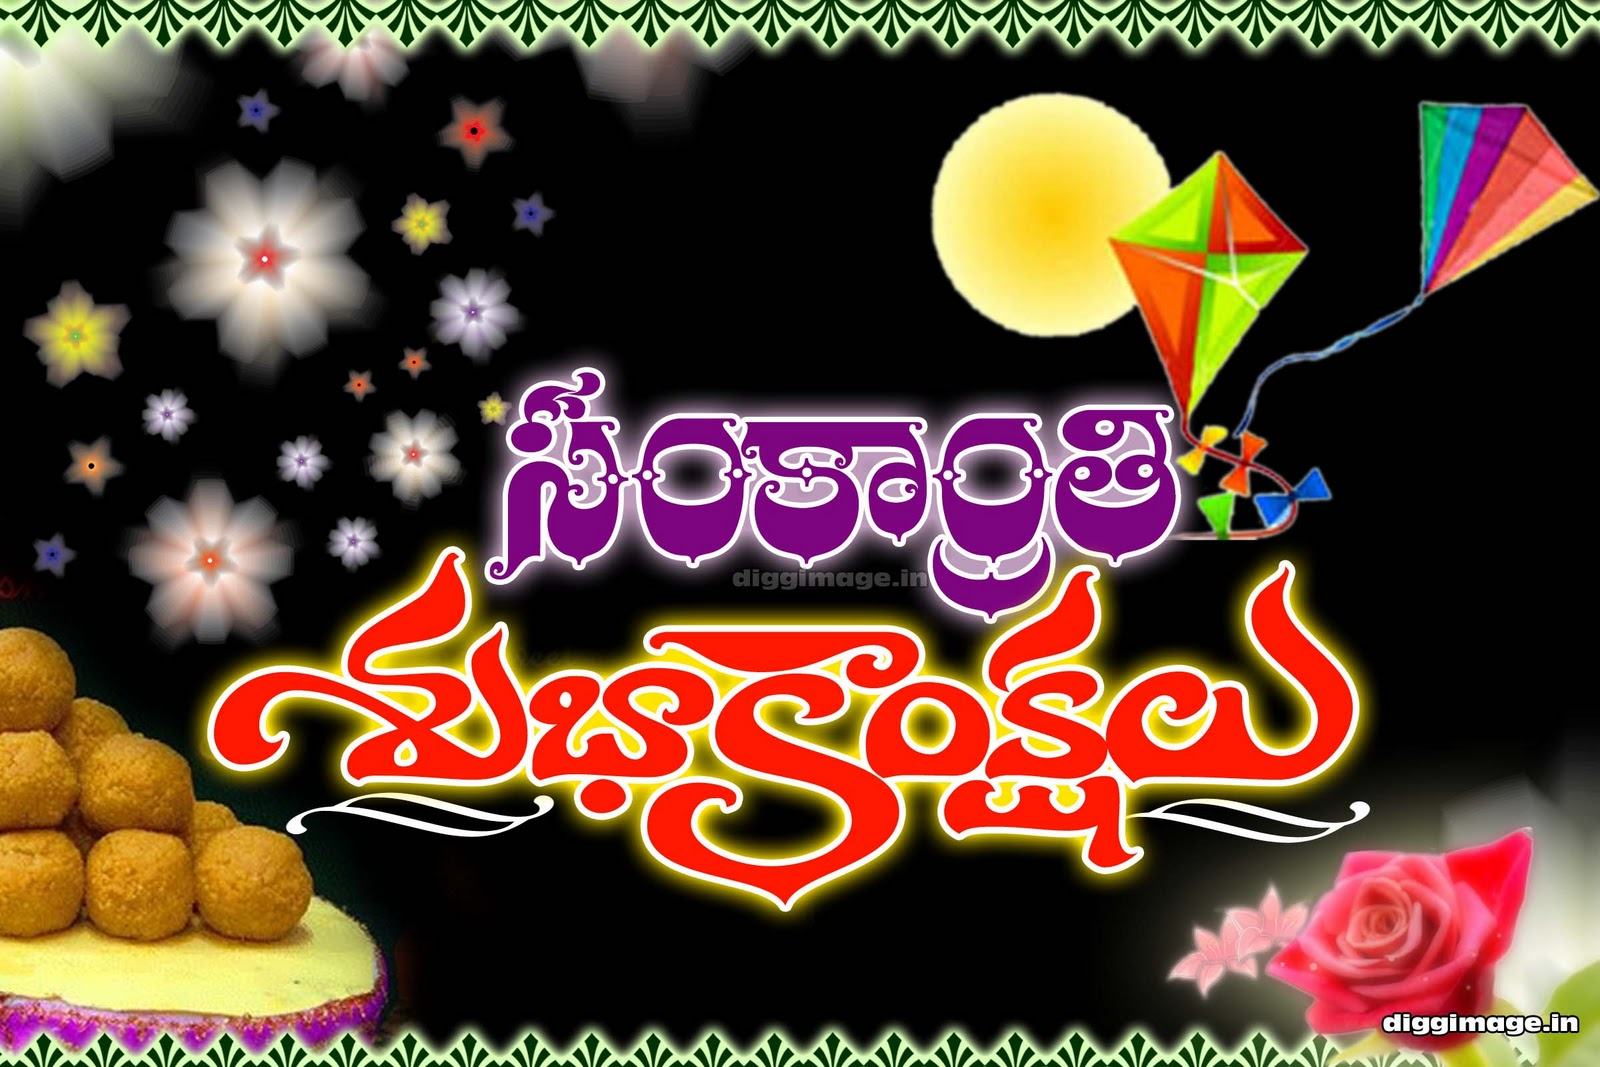 Makar Sankranti 2013 Pongal Greetings Wallpapers. 1600 x 1067.Happy New Year Wishes South Indian Movies In Hindi Dubbed